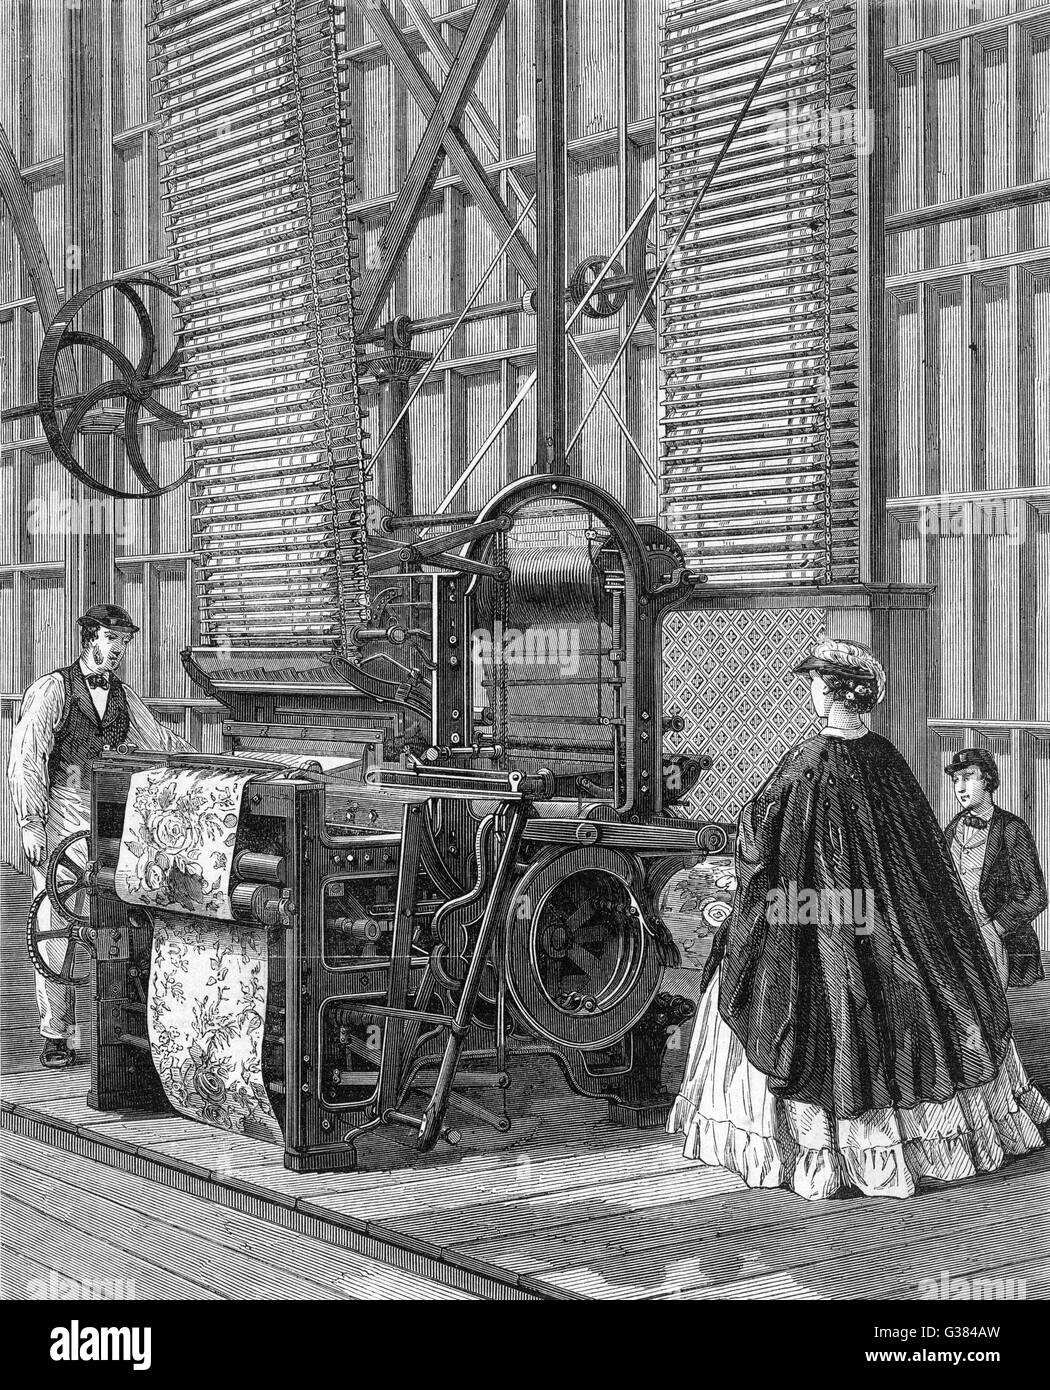 Smith's Power-Loom for  weaving tufted pile carpets. (Exhibited at the 1862 Exhibition, London).       Date: - Stock Image